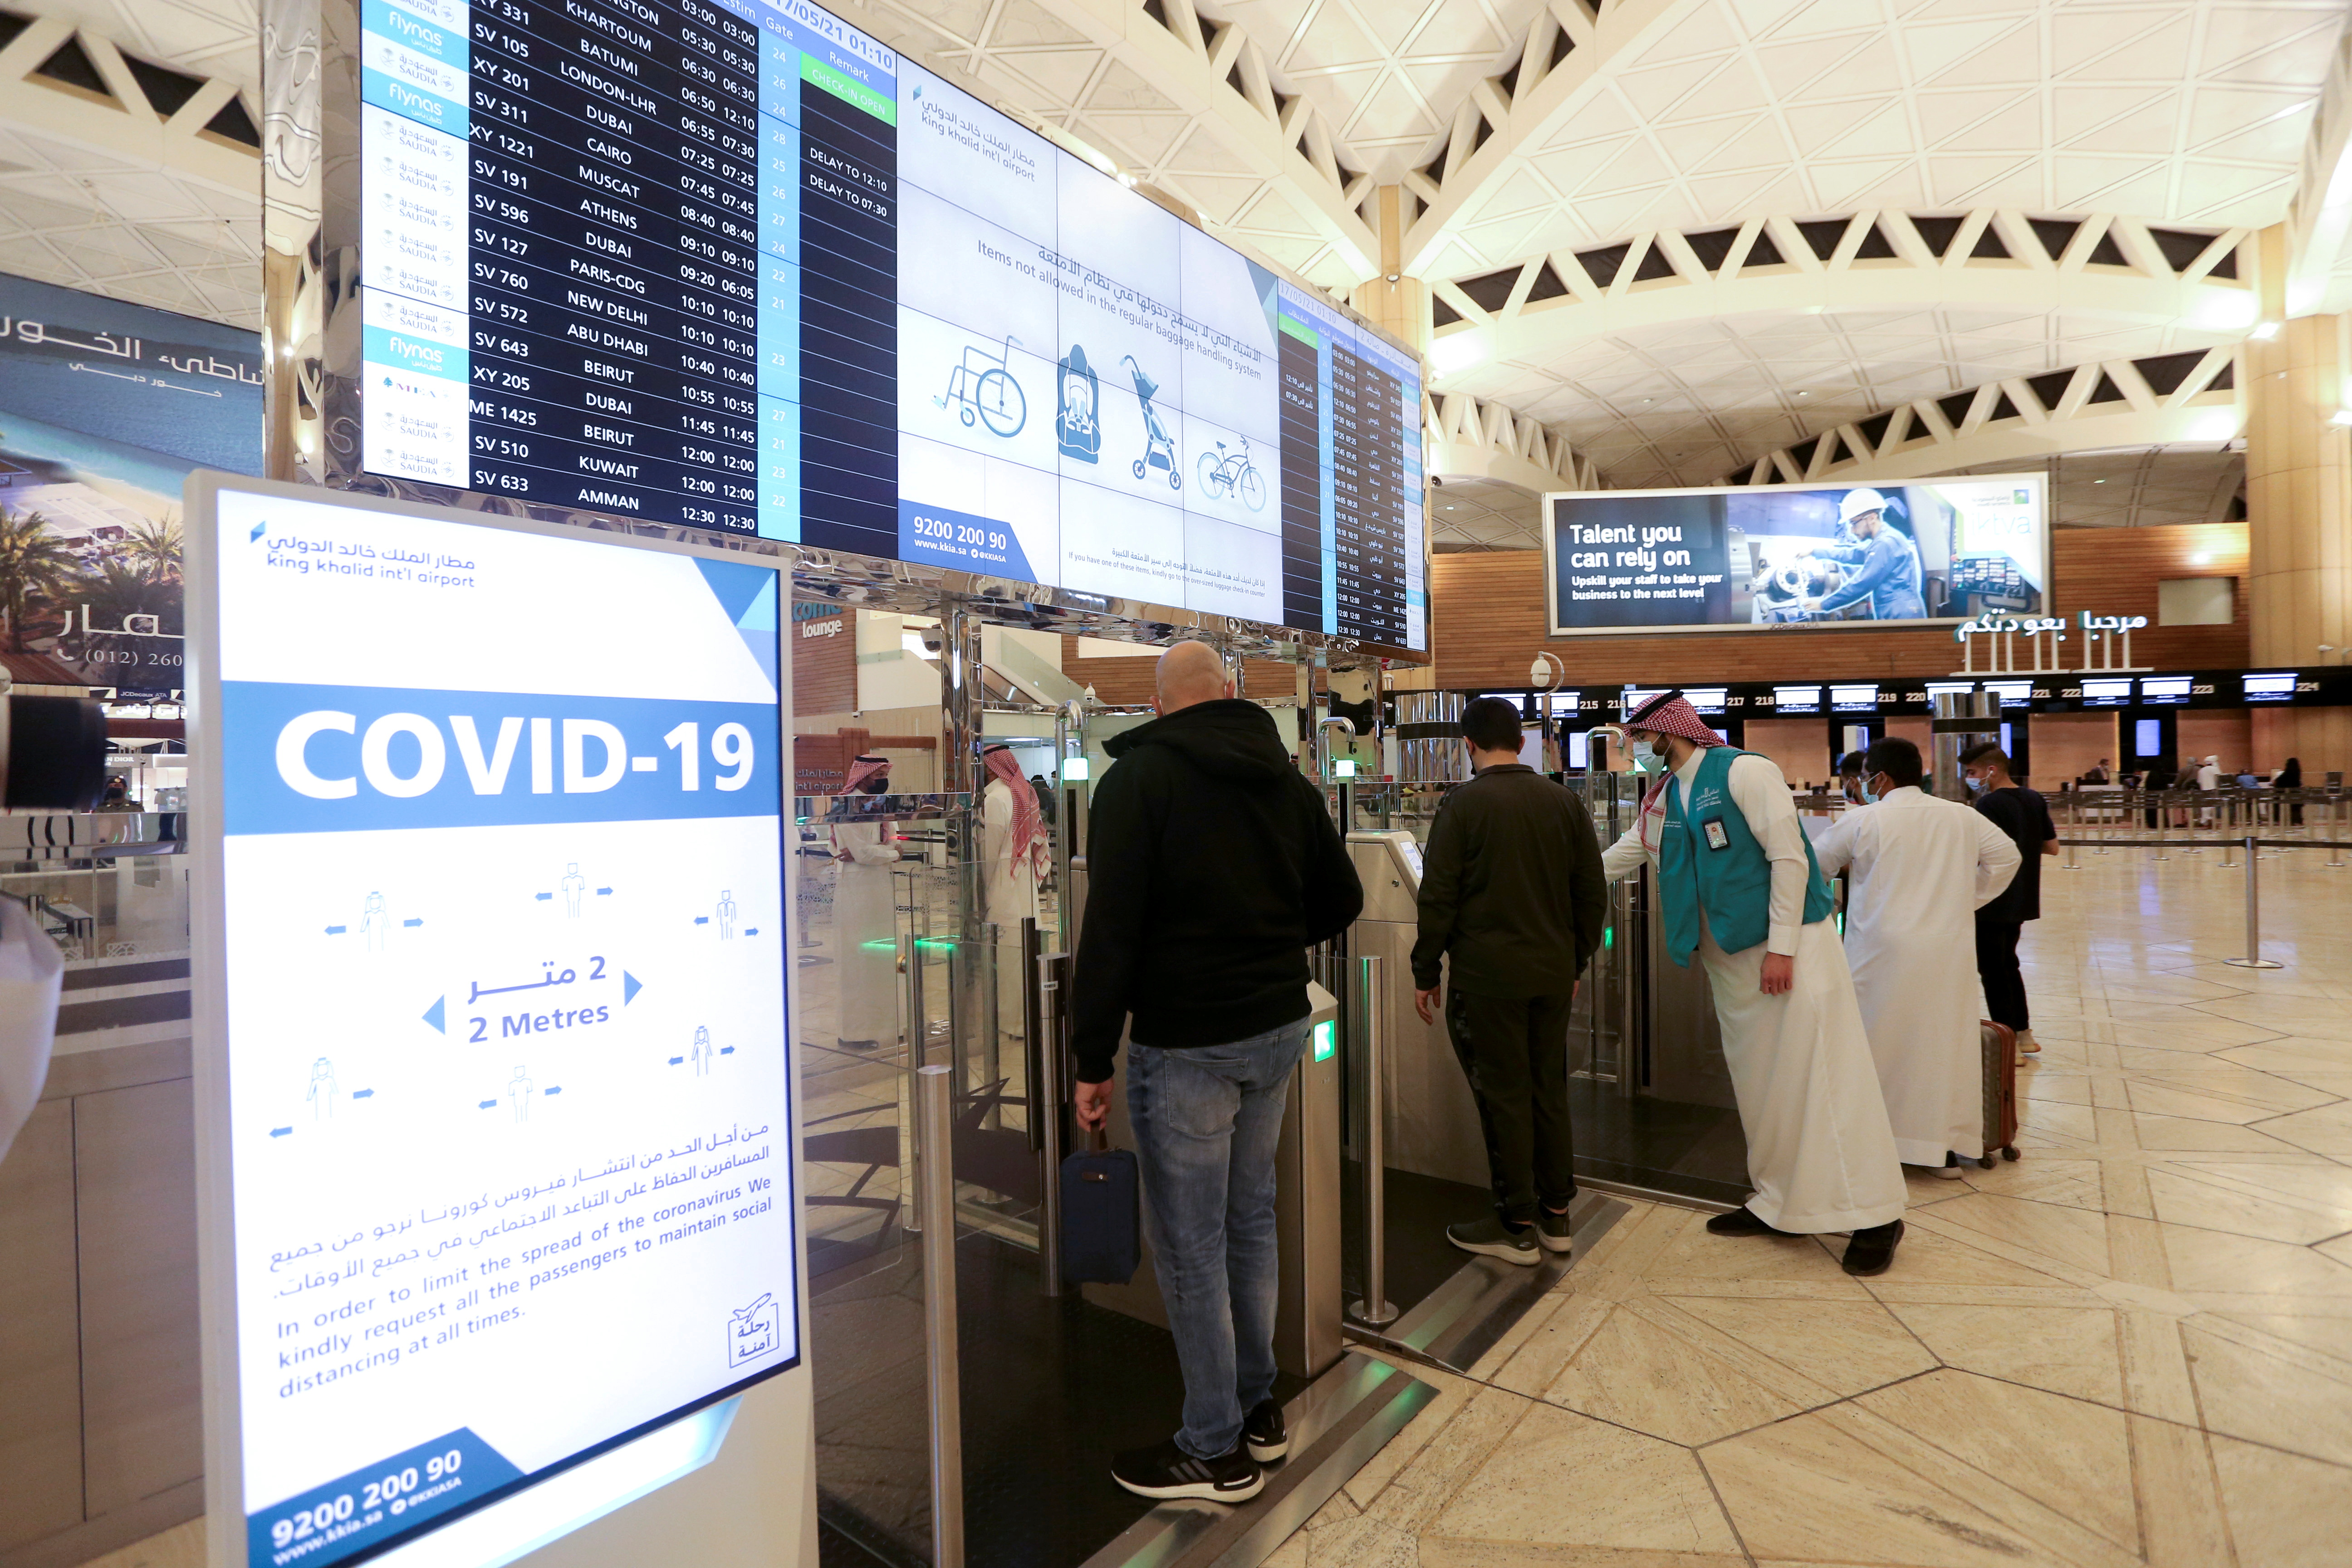 Saudi nationals scan their documents at a digital-Immigration gate at the King Khalid International Airport, after Saudi authorities lifted the travel ban on its citizens after fourteen months due to coronavirus disease (COVID-19) restrictions, in Riyadh, Saudi Arabia, May 16, 2021. REUTERS/Ahmed Yosri